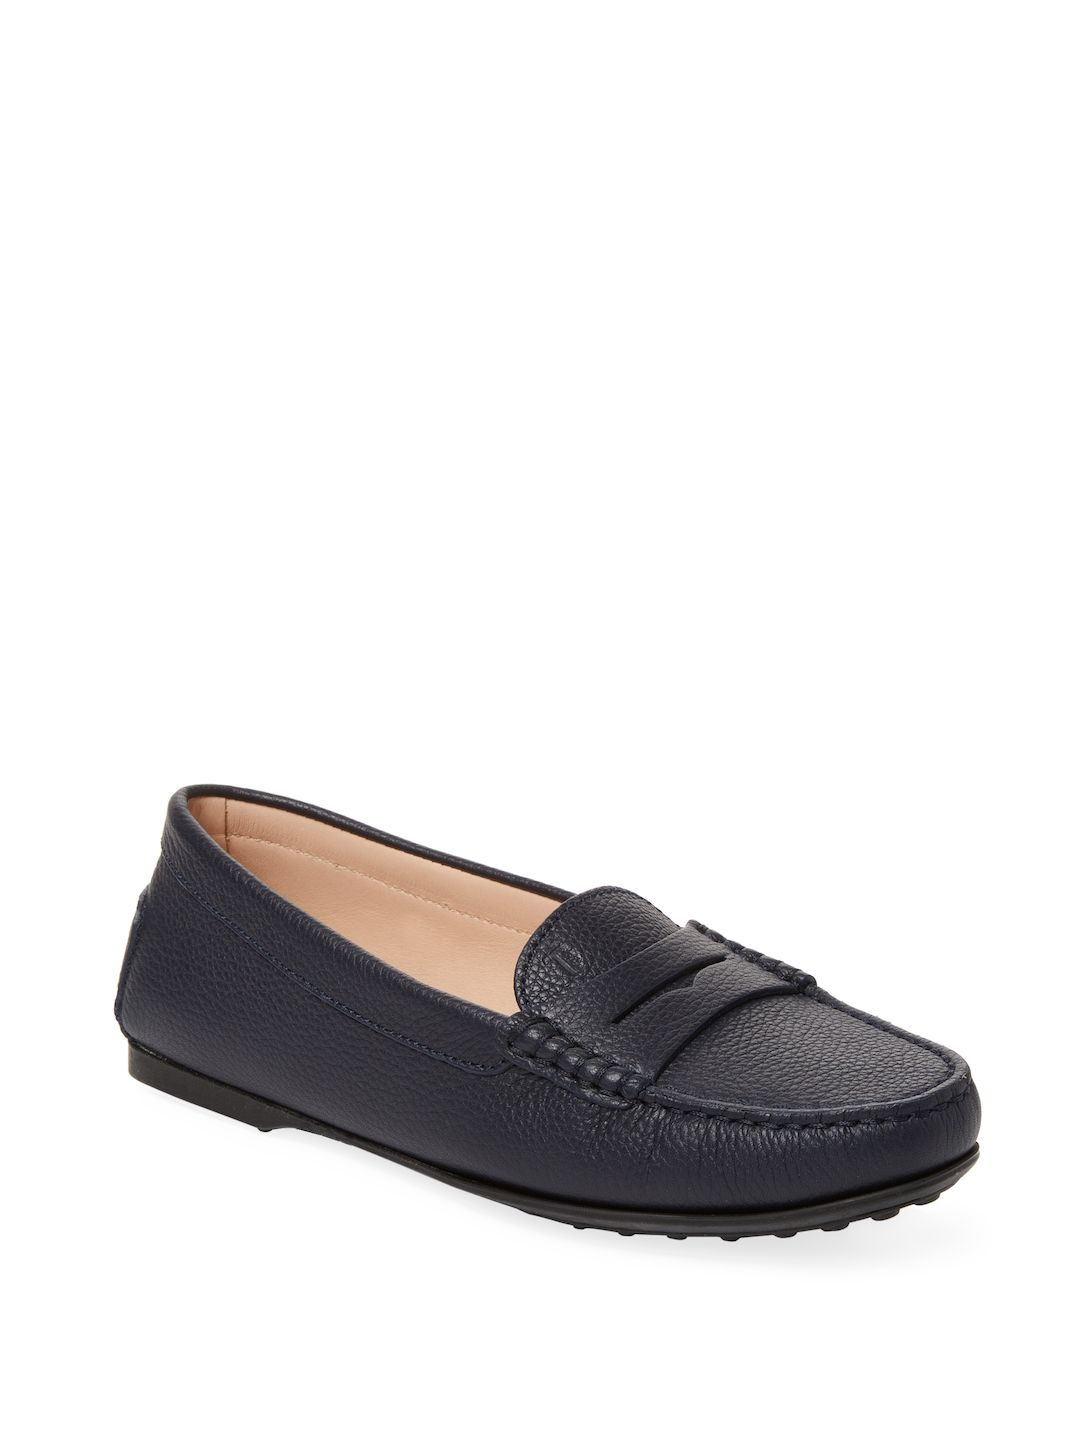 new styles fbdba cea49 TOD'S WOMEN'S CITY GOMMINO LEATHER PENNY DRIVER - SIZE 38 ...